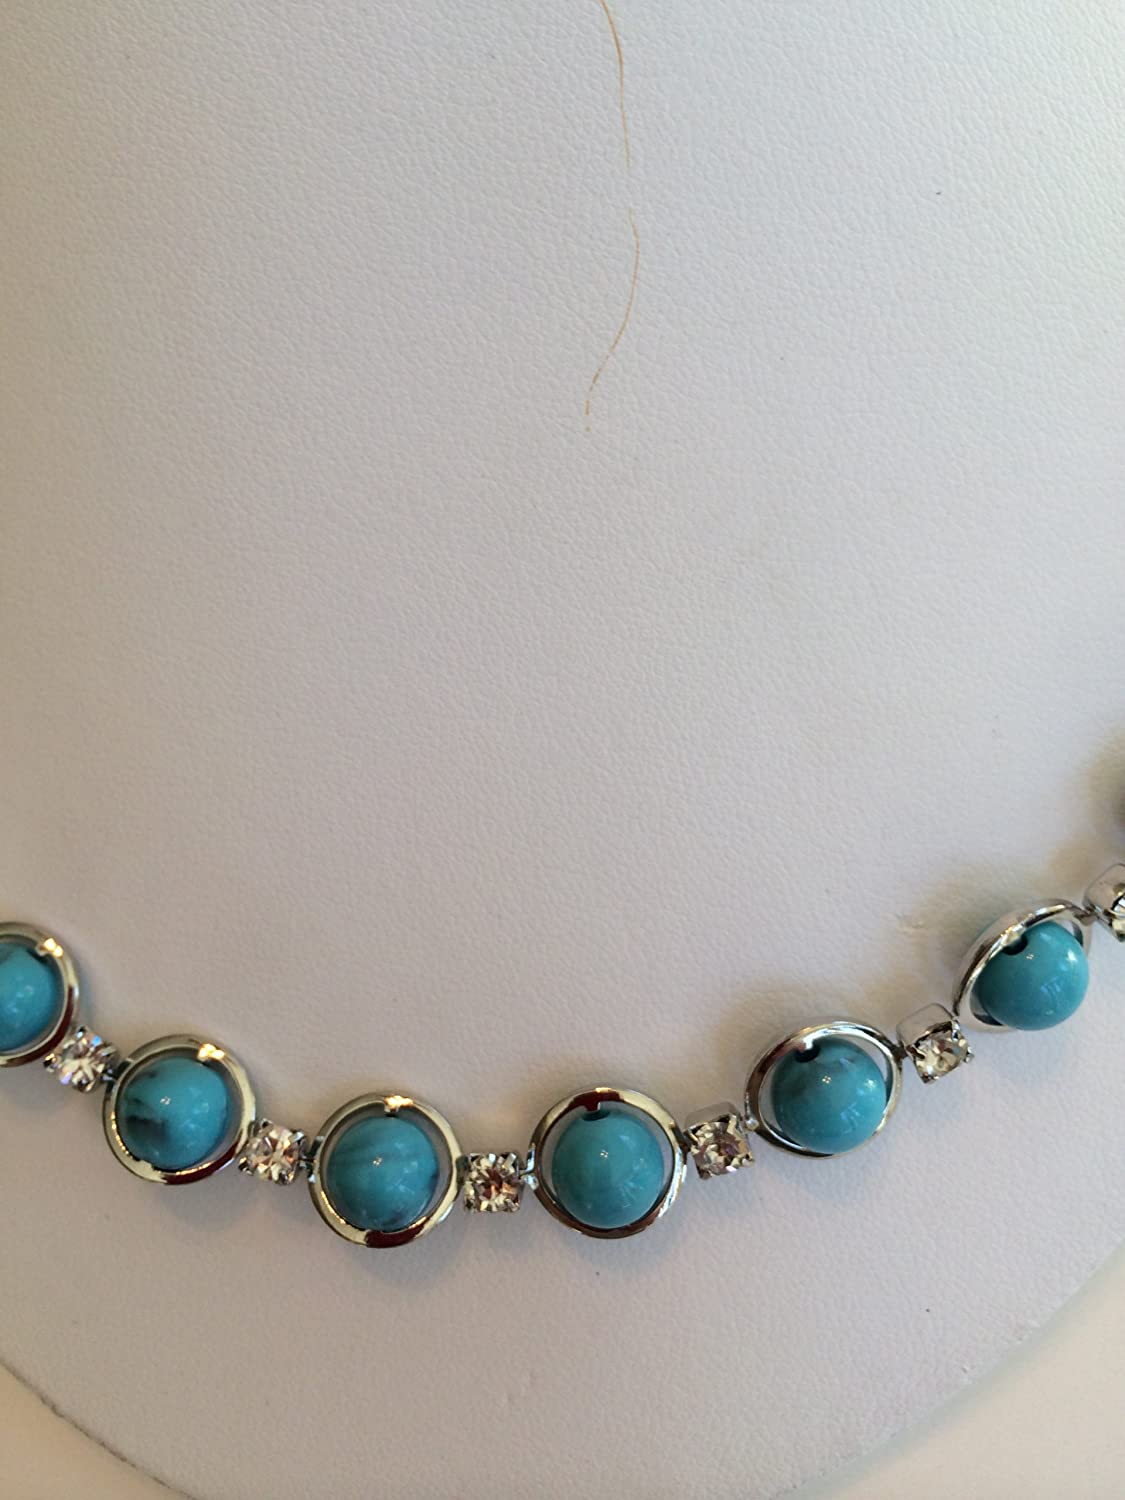 1928 Jewelry Co Silver Tone Necklace with Turquoise Beads & Crystals 016